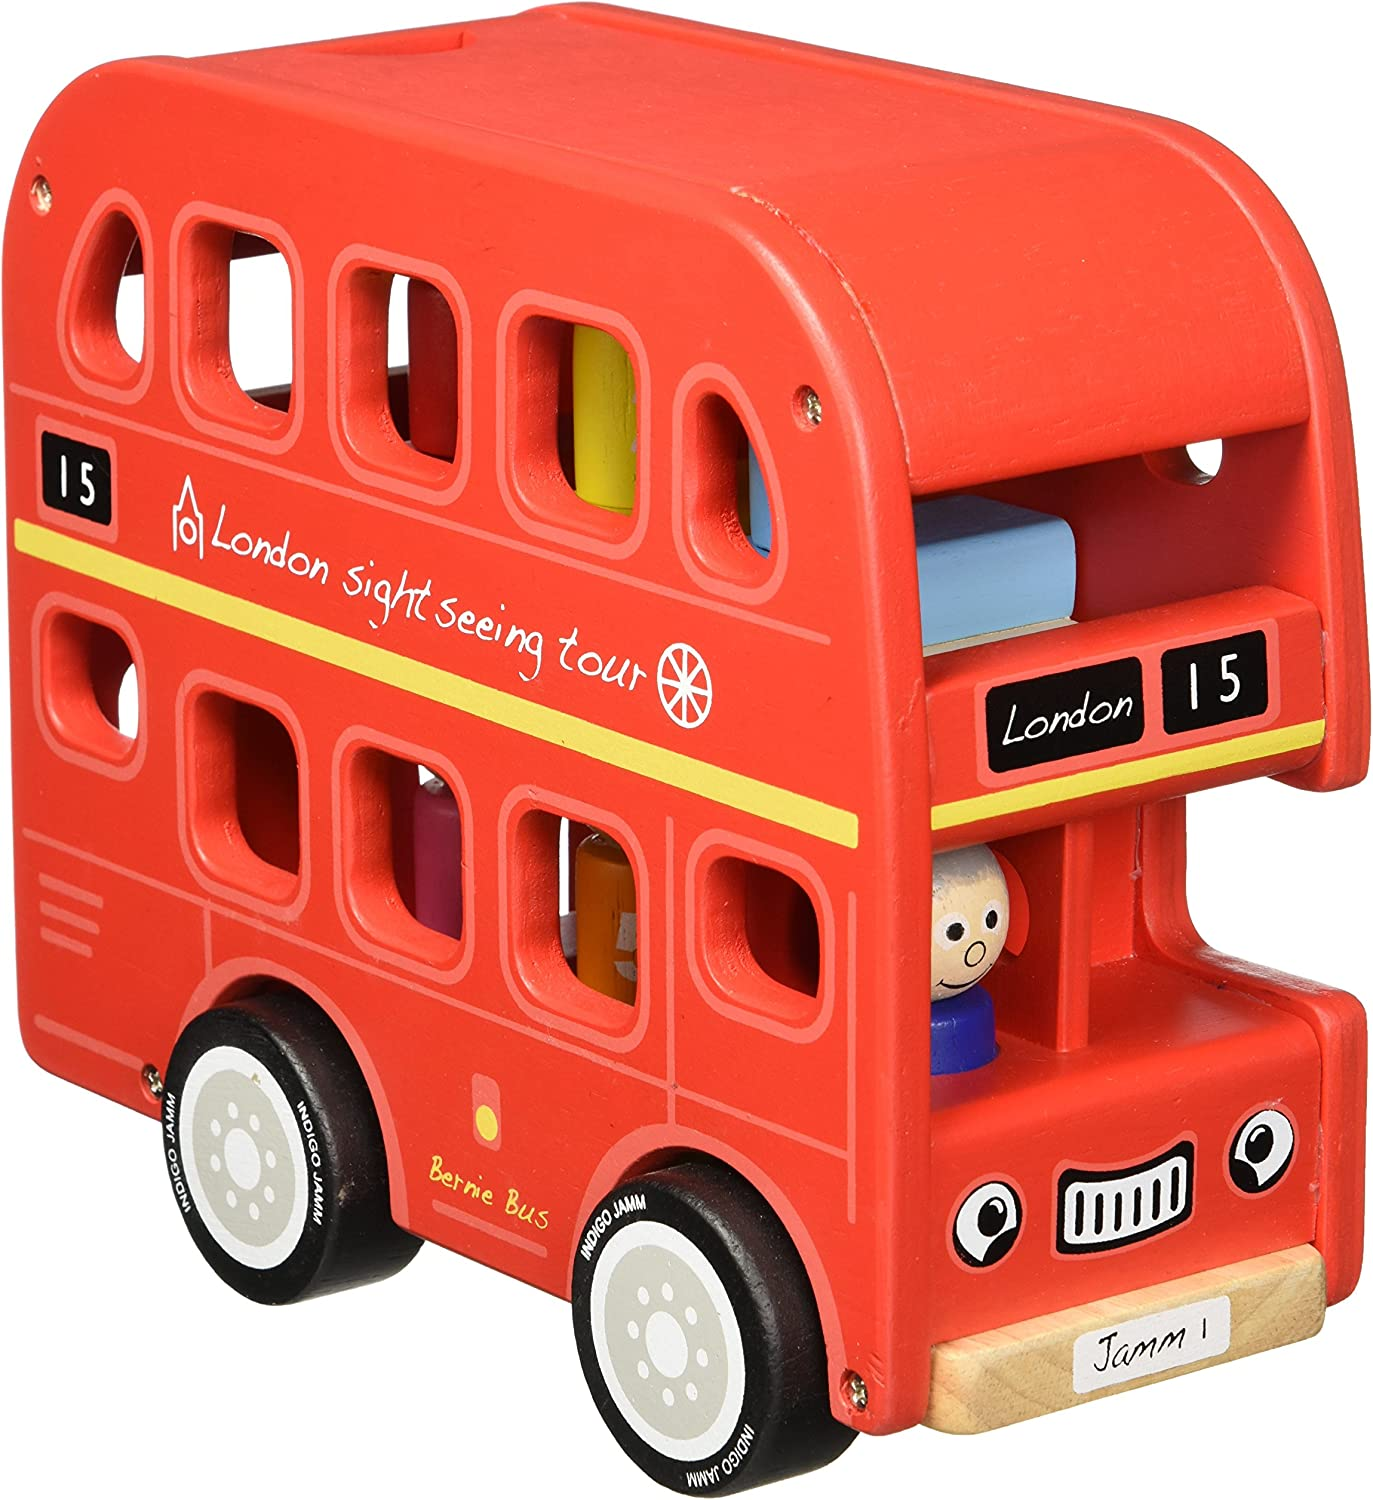 Indigo Jamm Bernie's Number Bus, Wooden Toy Iconic London Bus Vehicle with Removable Roof and Passengers